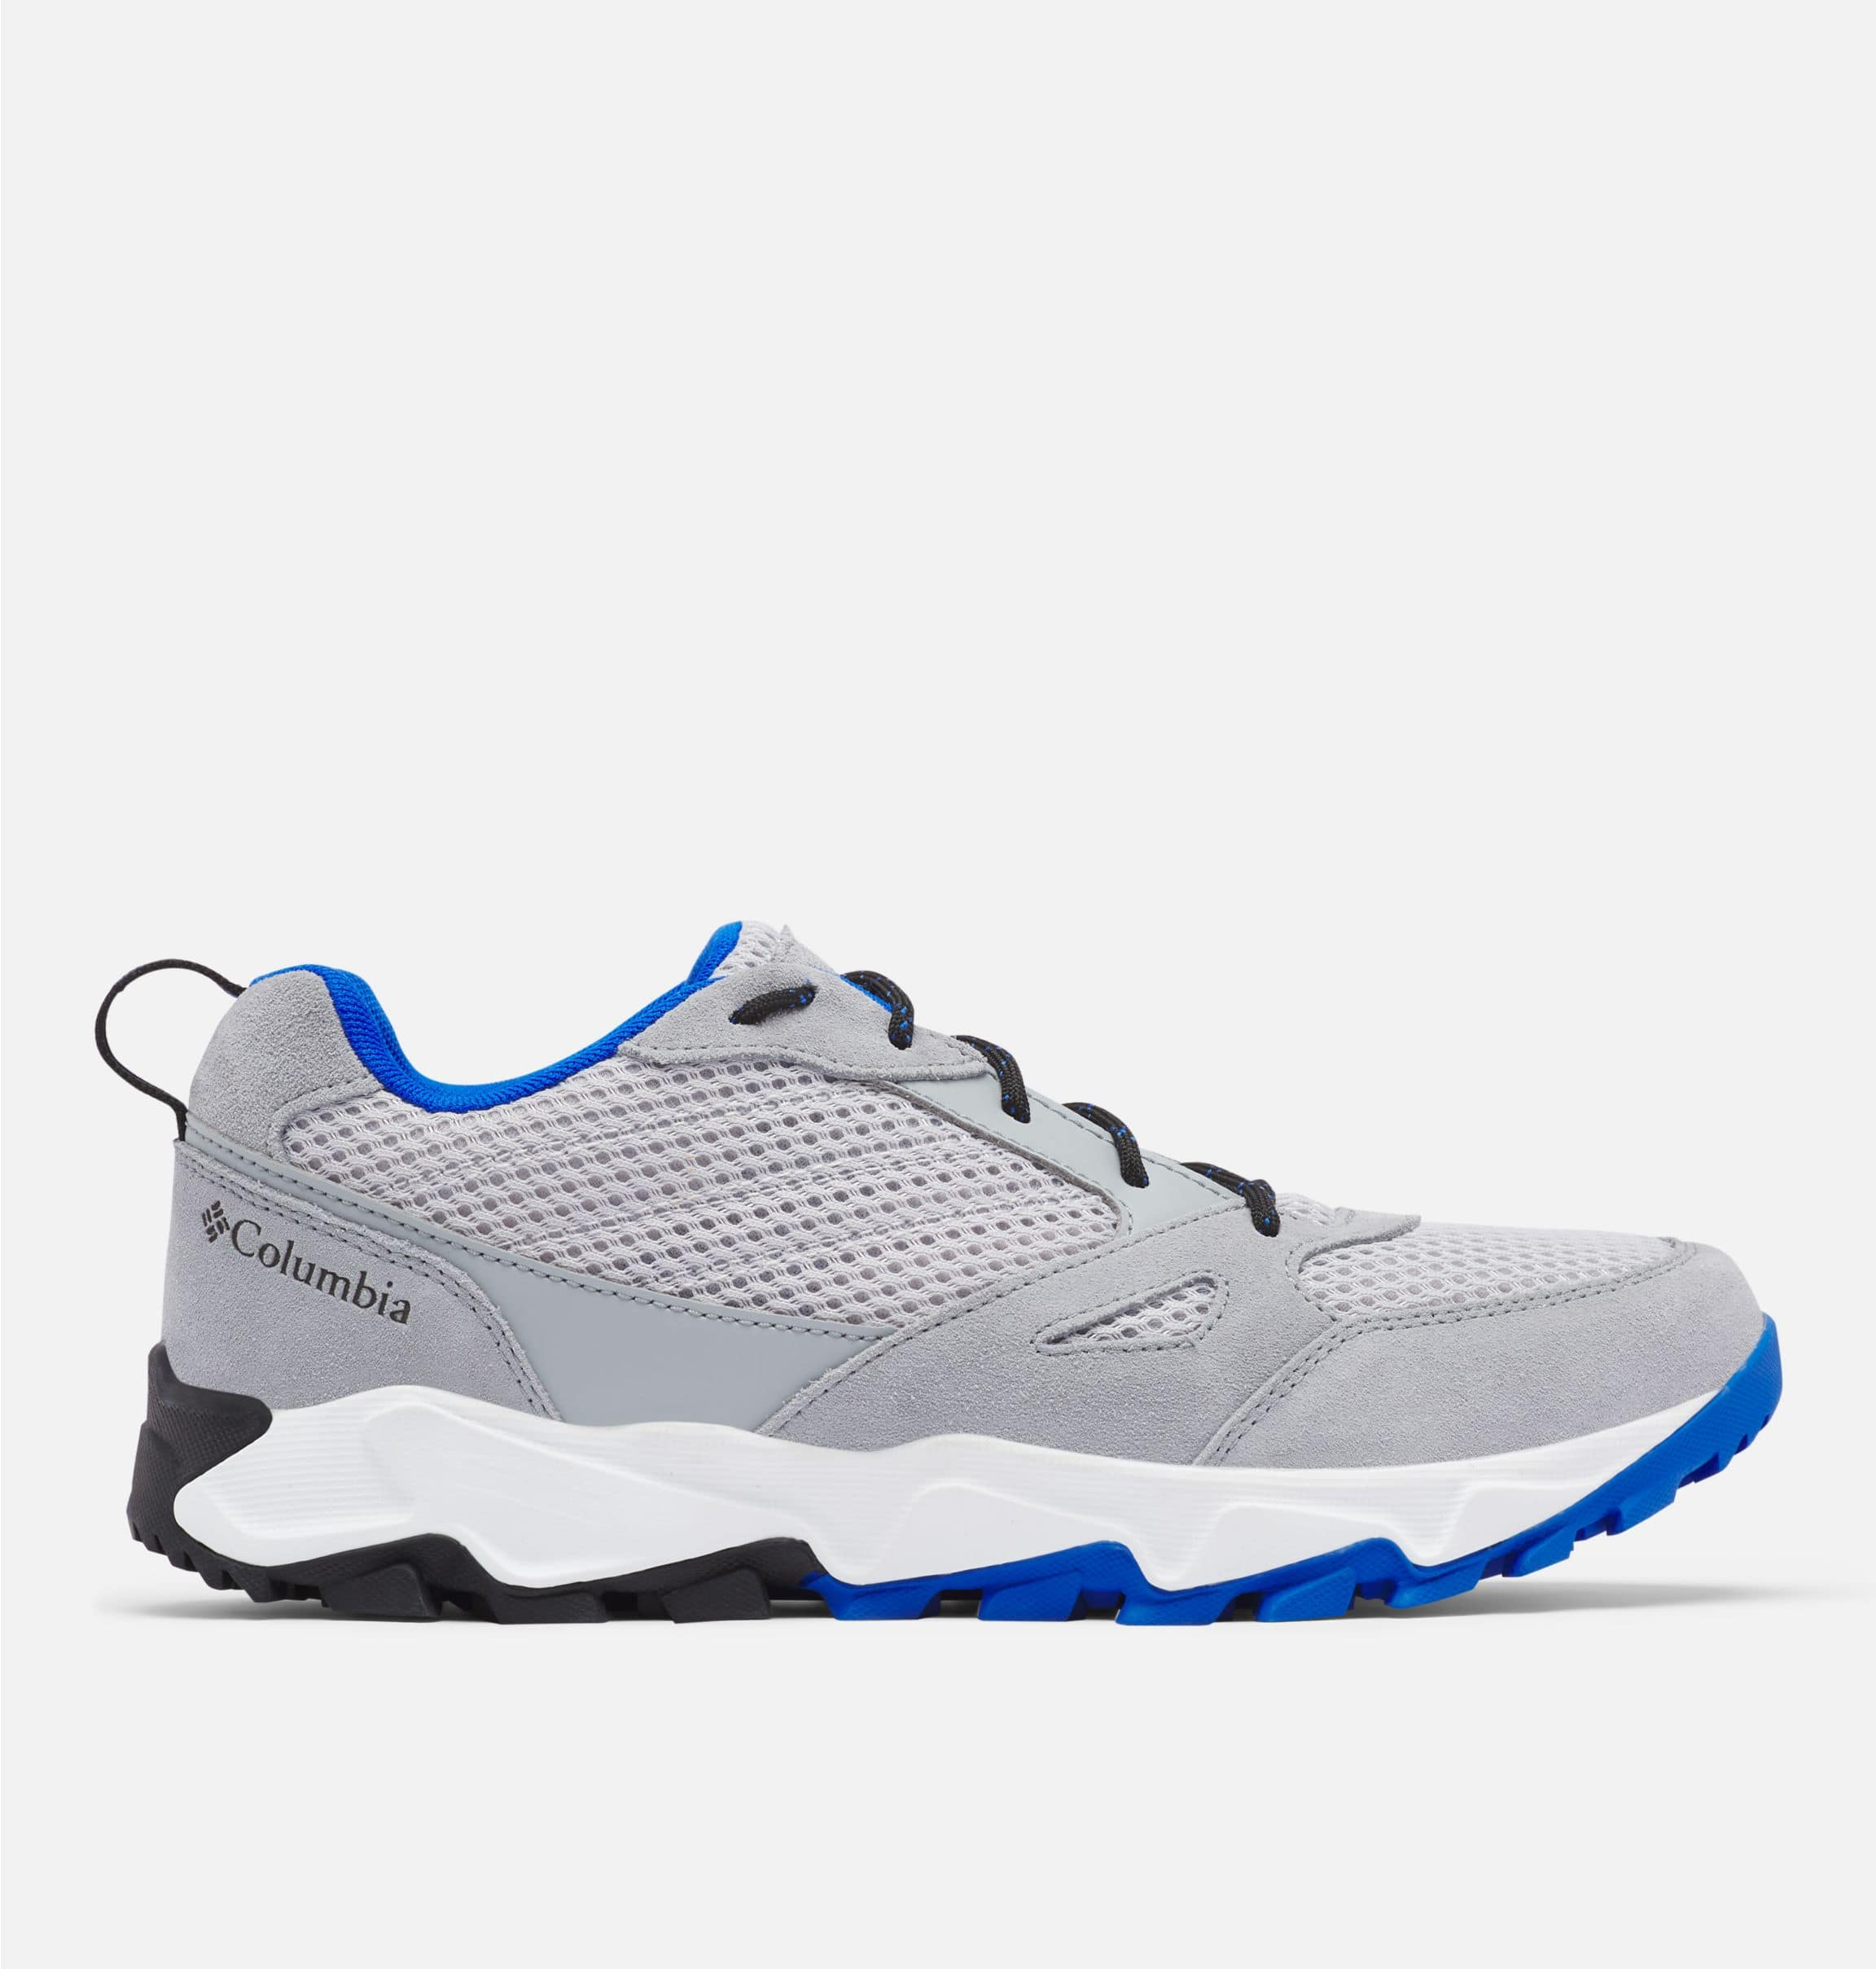 Columbia Footwear: Men's Ivo Trail Breeze Shoe $32, Women's Drainmaker IV Water Shoe $39.95, More + Free Shipping